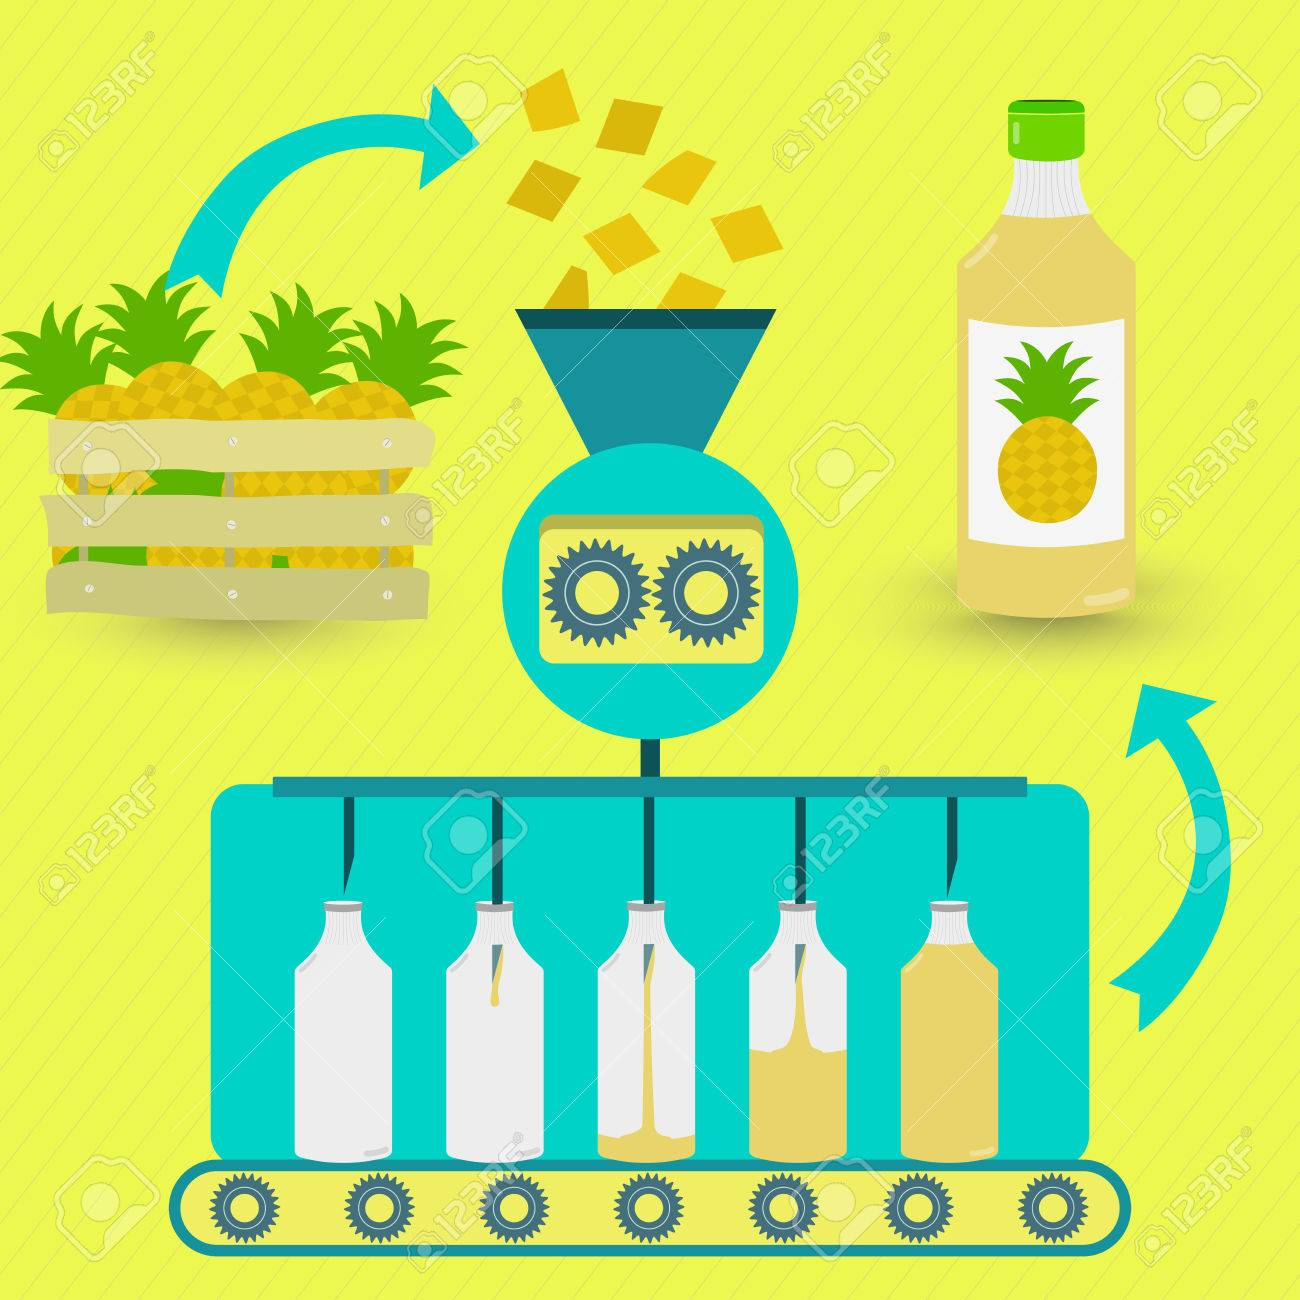 Pineapple juice fabrication process. Pineapple juice series production. Fresh pineapples being processed. Bottled pineapple juice. - 48371782